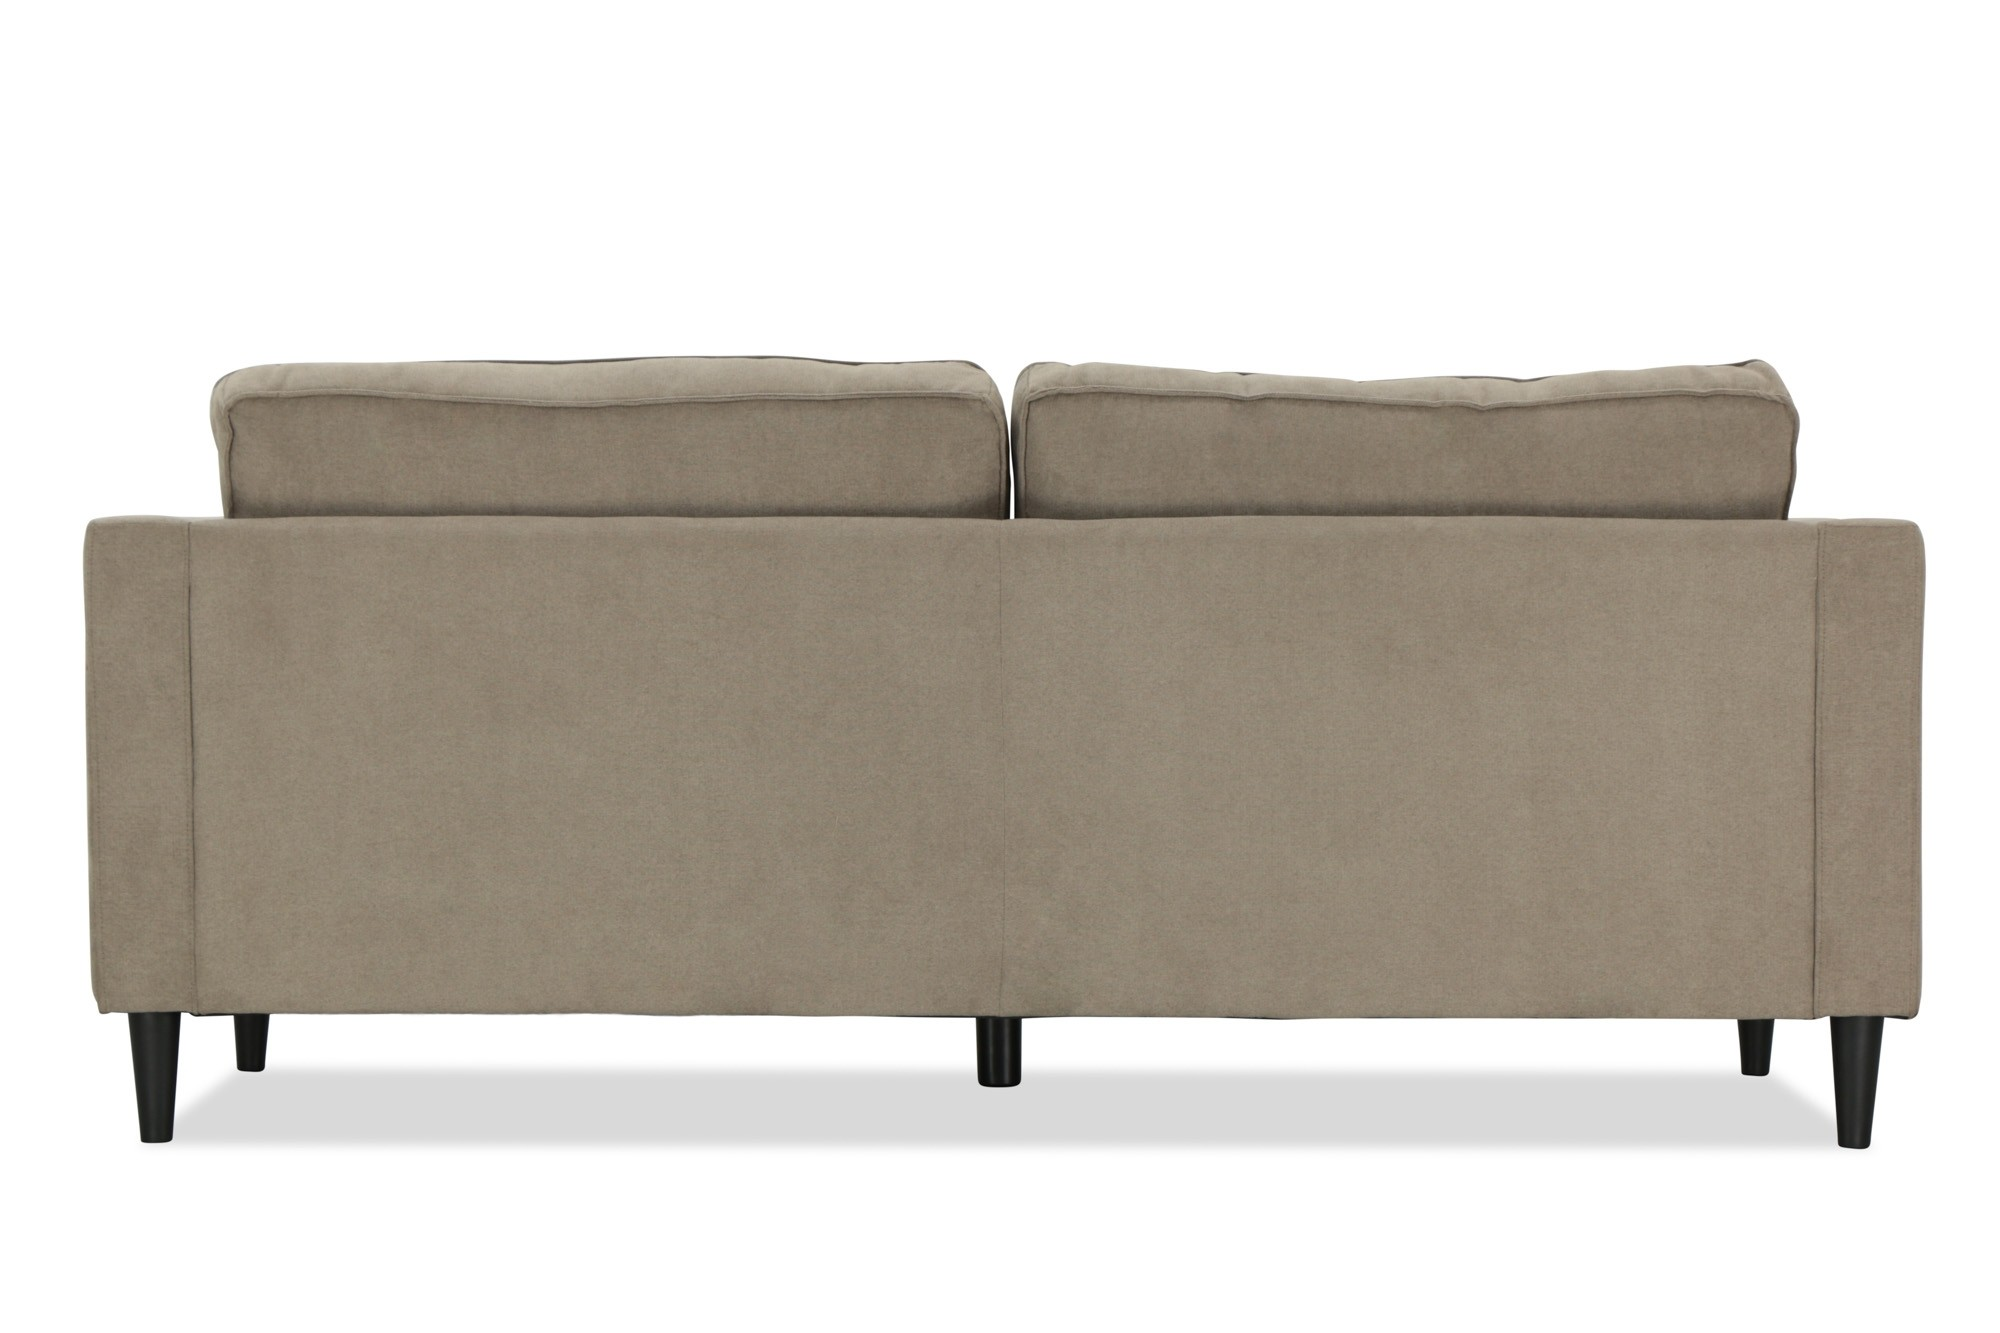 Sofa Taupe Taupe Sofa Review Home Decor